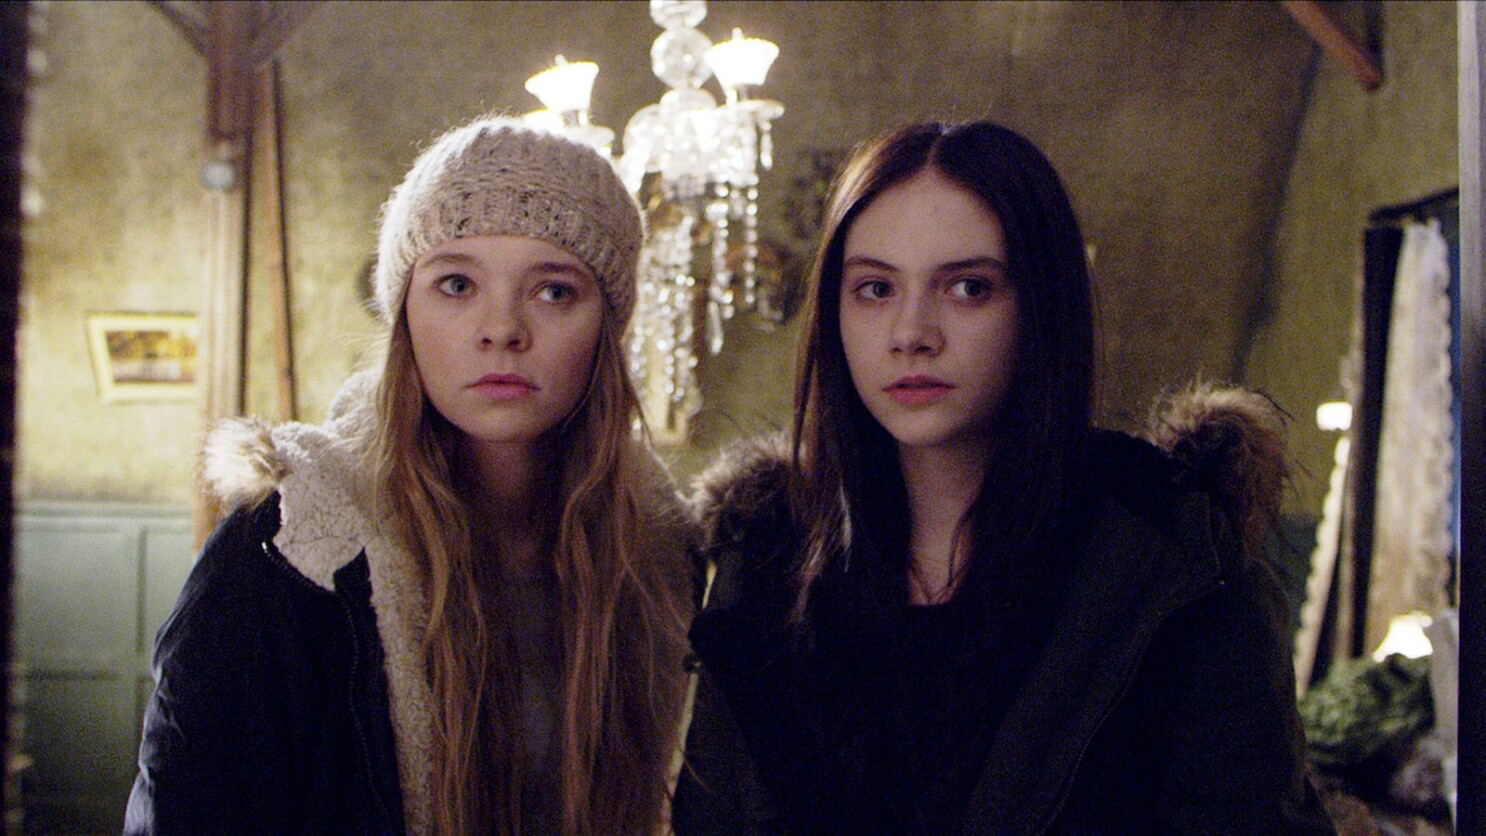 Review: Hardcore horror 'Incident in a Ghostland' tainted by hate - Los  Angeles Times